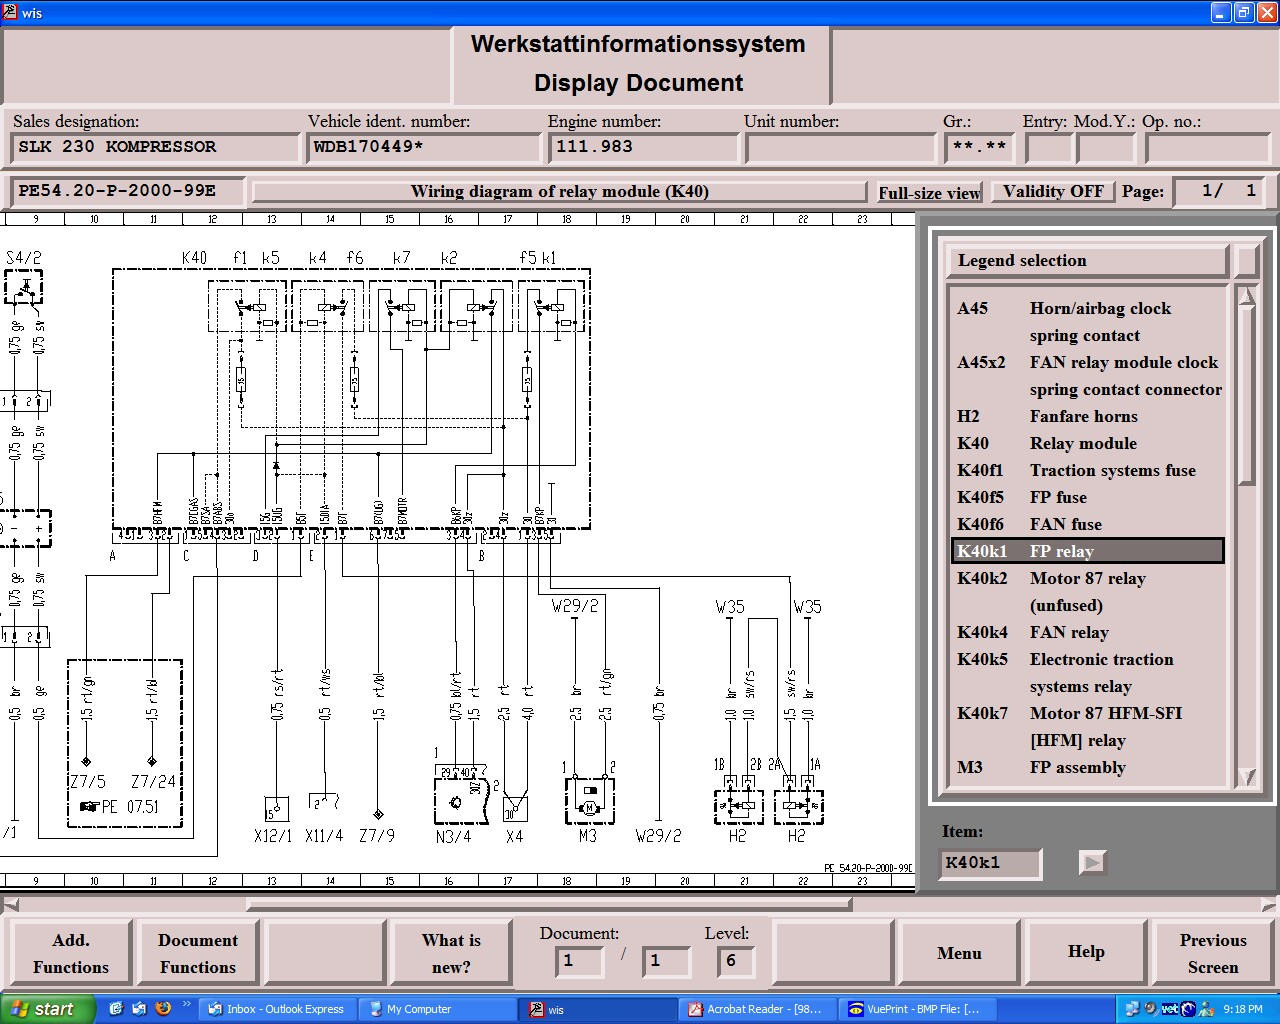 Slk Fuse Diagram Data Wiring On A 1999 Ford Focus Box 230 Diagrams Schematic 2001 F250